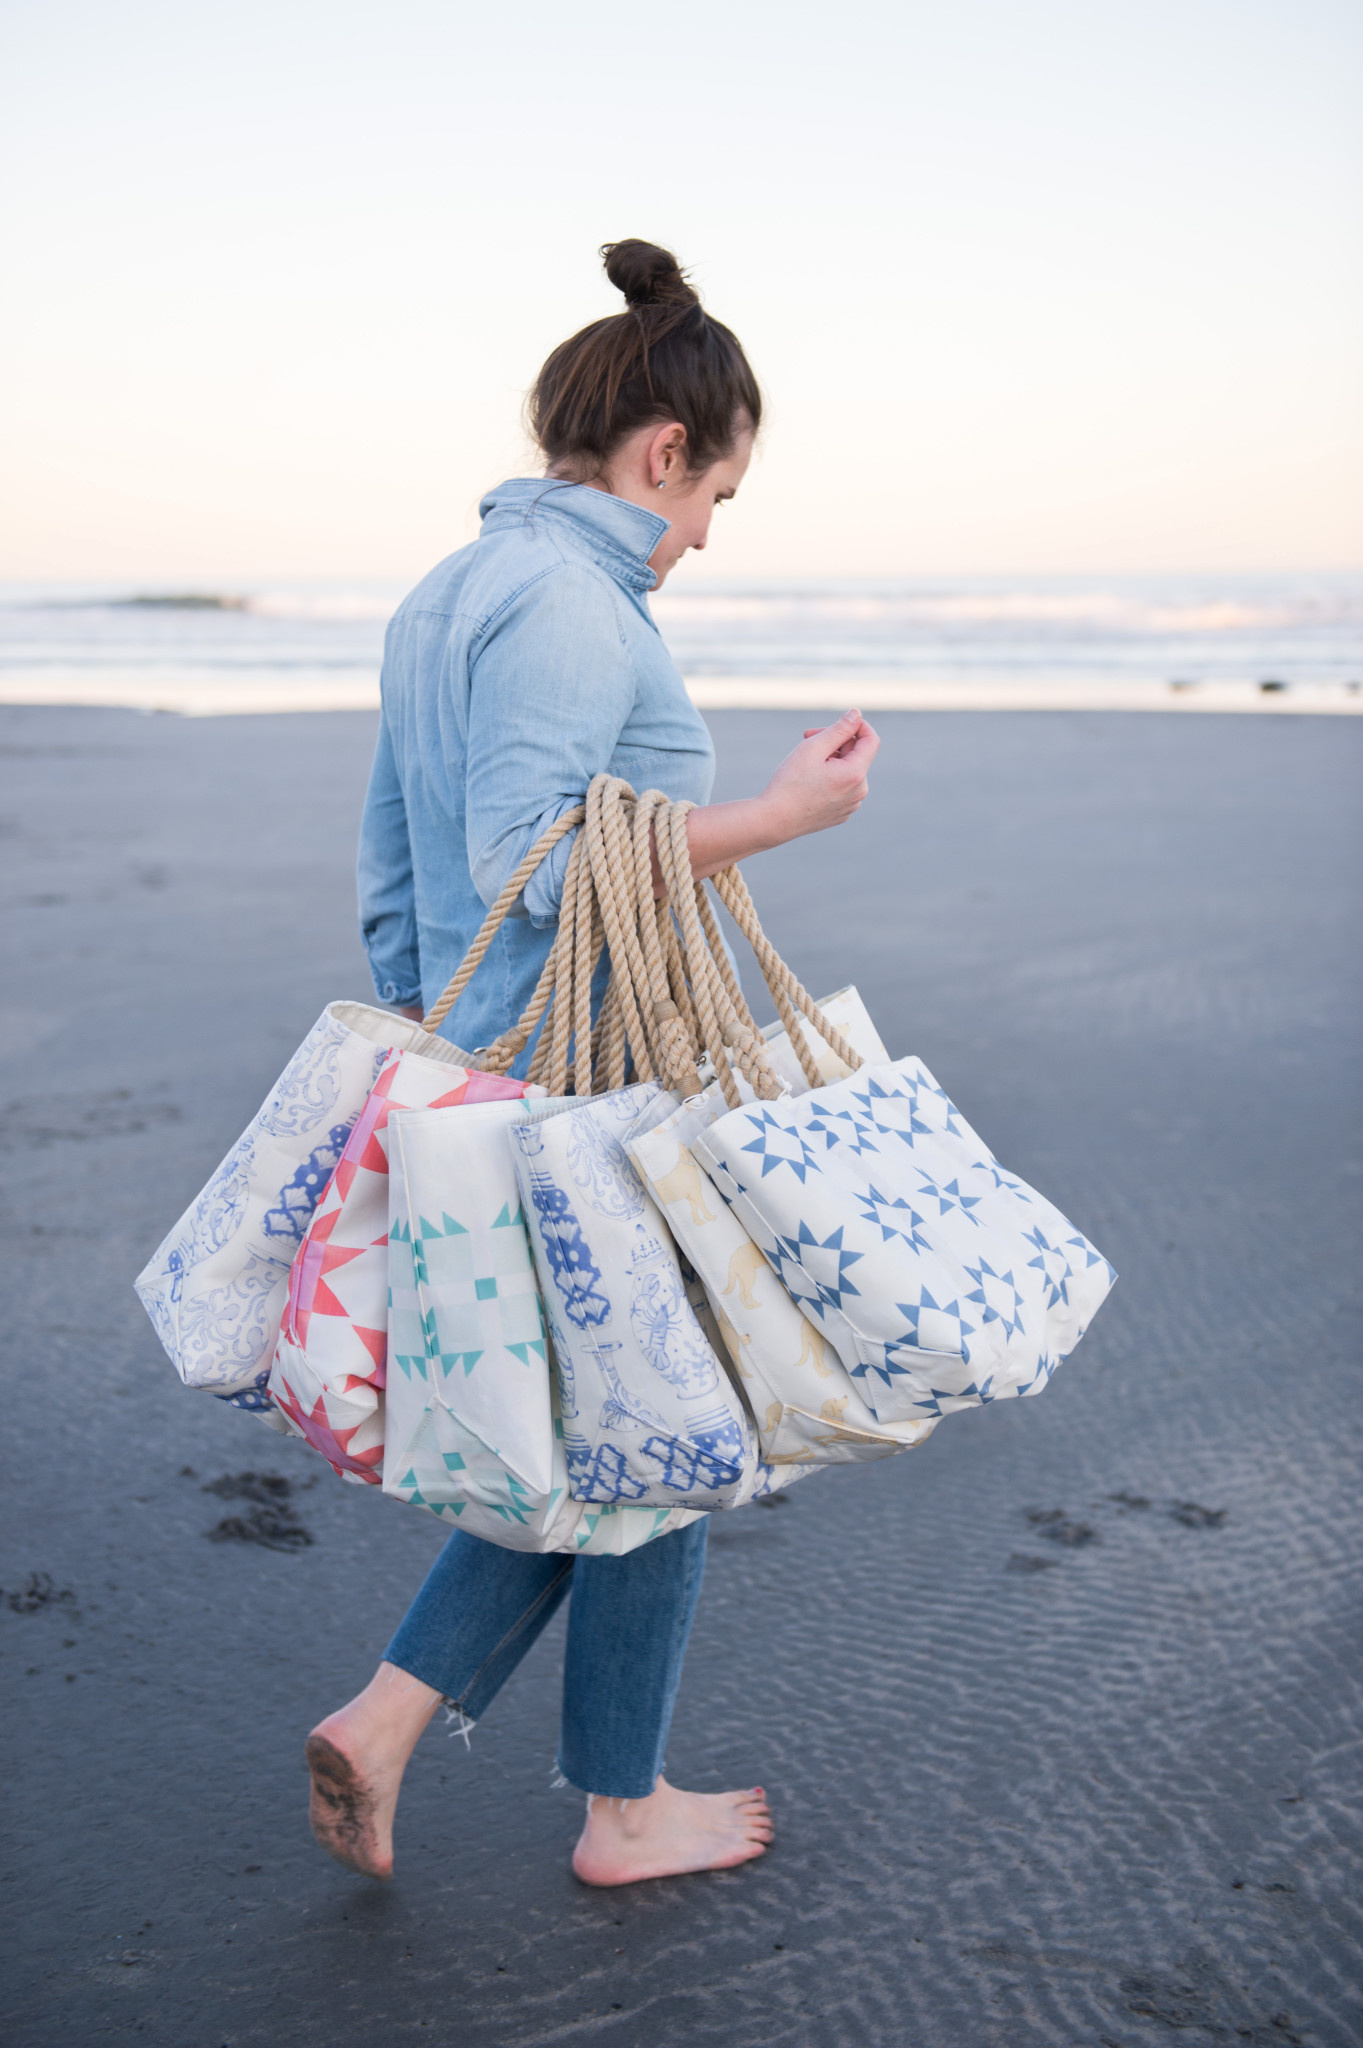 Sea Bags Sara Fitz - Blue Quilt - Large Tote - Hemp Handle with Clasp